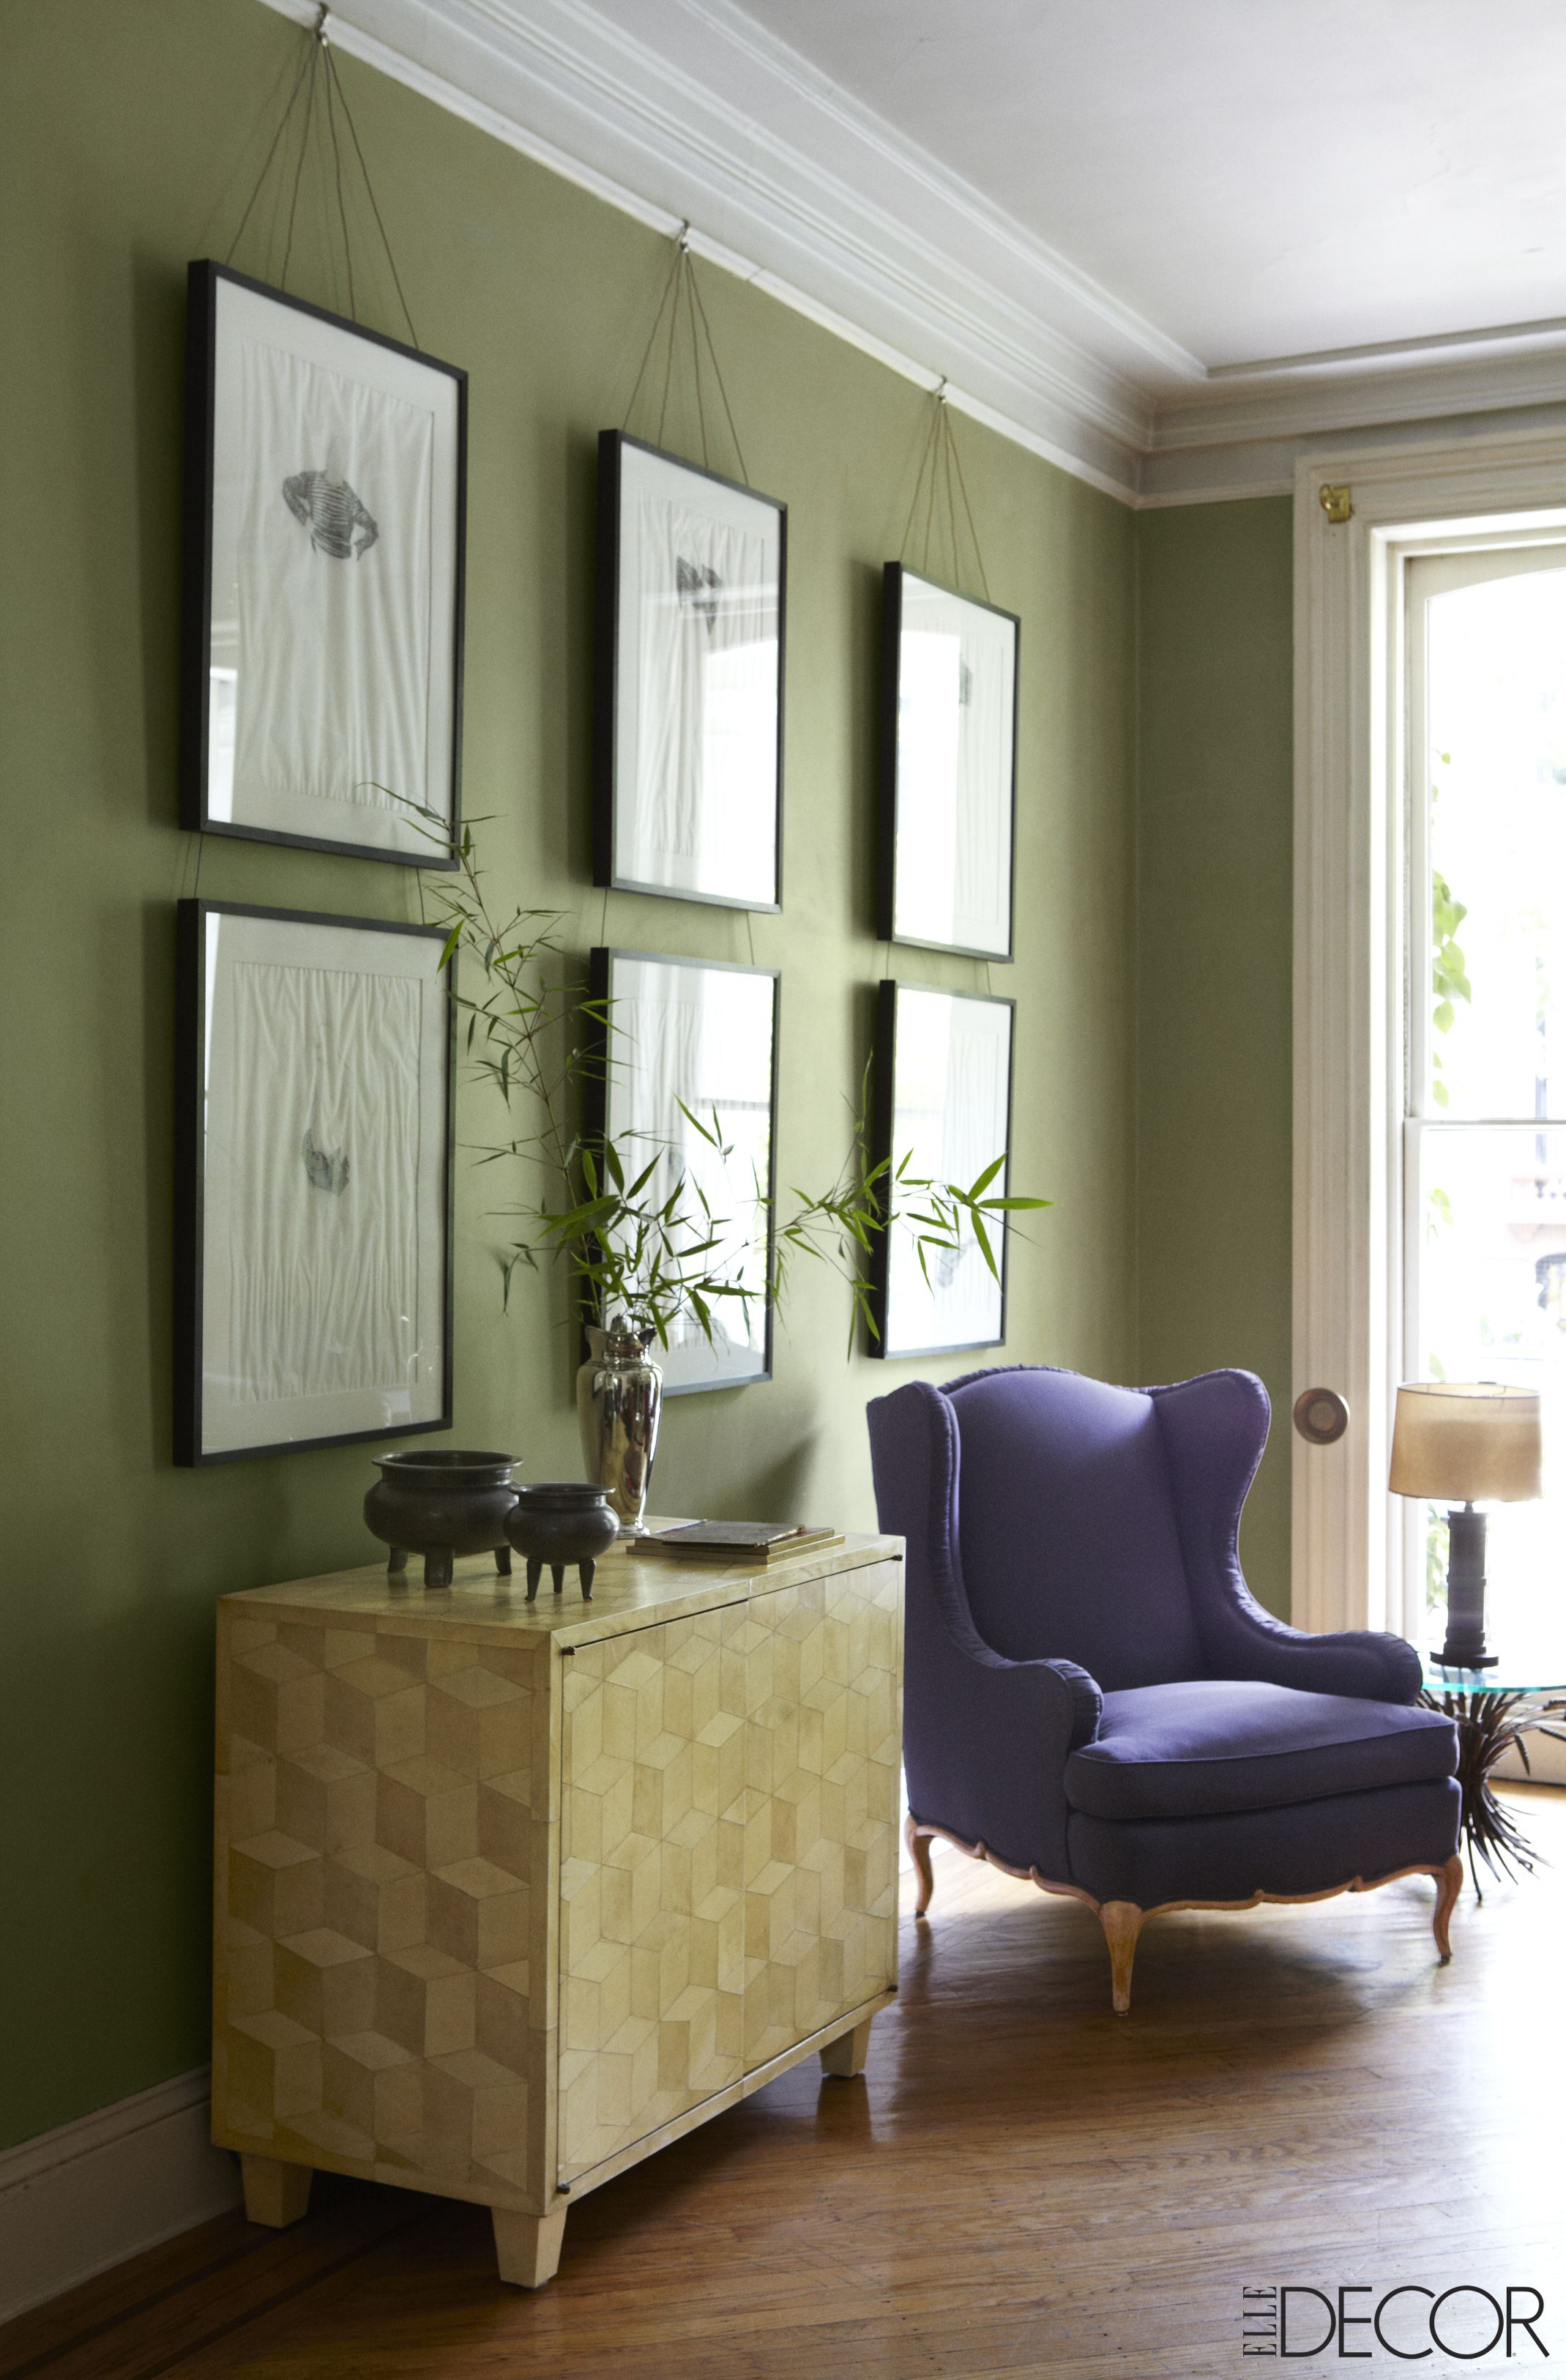 Olive Green Paint Color   Decor Ideas   Olive Green Walls  Furniture    Decorations. Olive Green Paint Color   Decor Ideas   Olive Green Walls